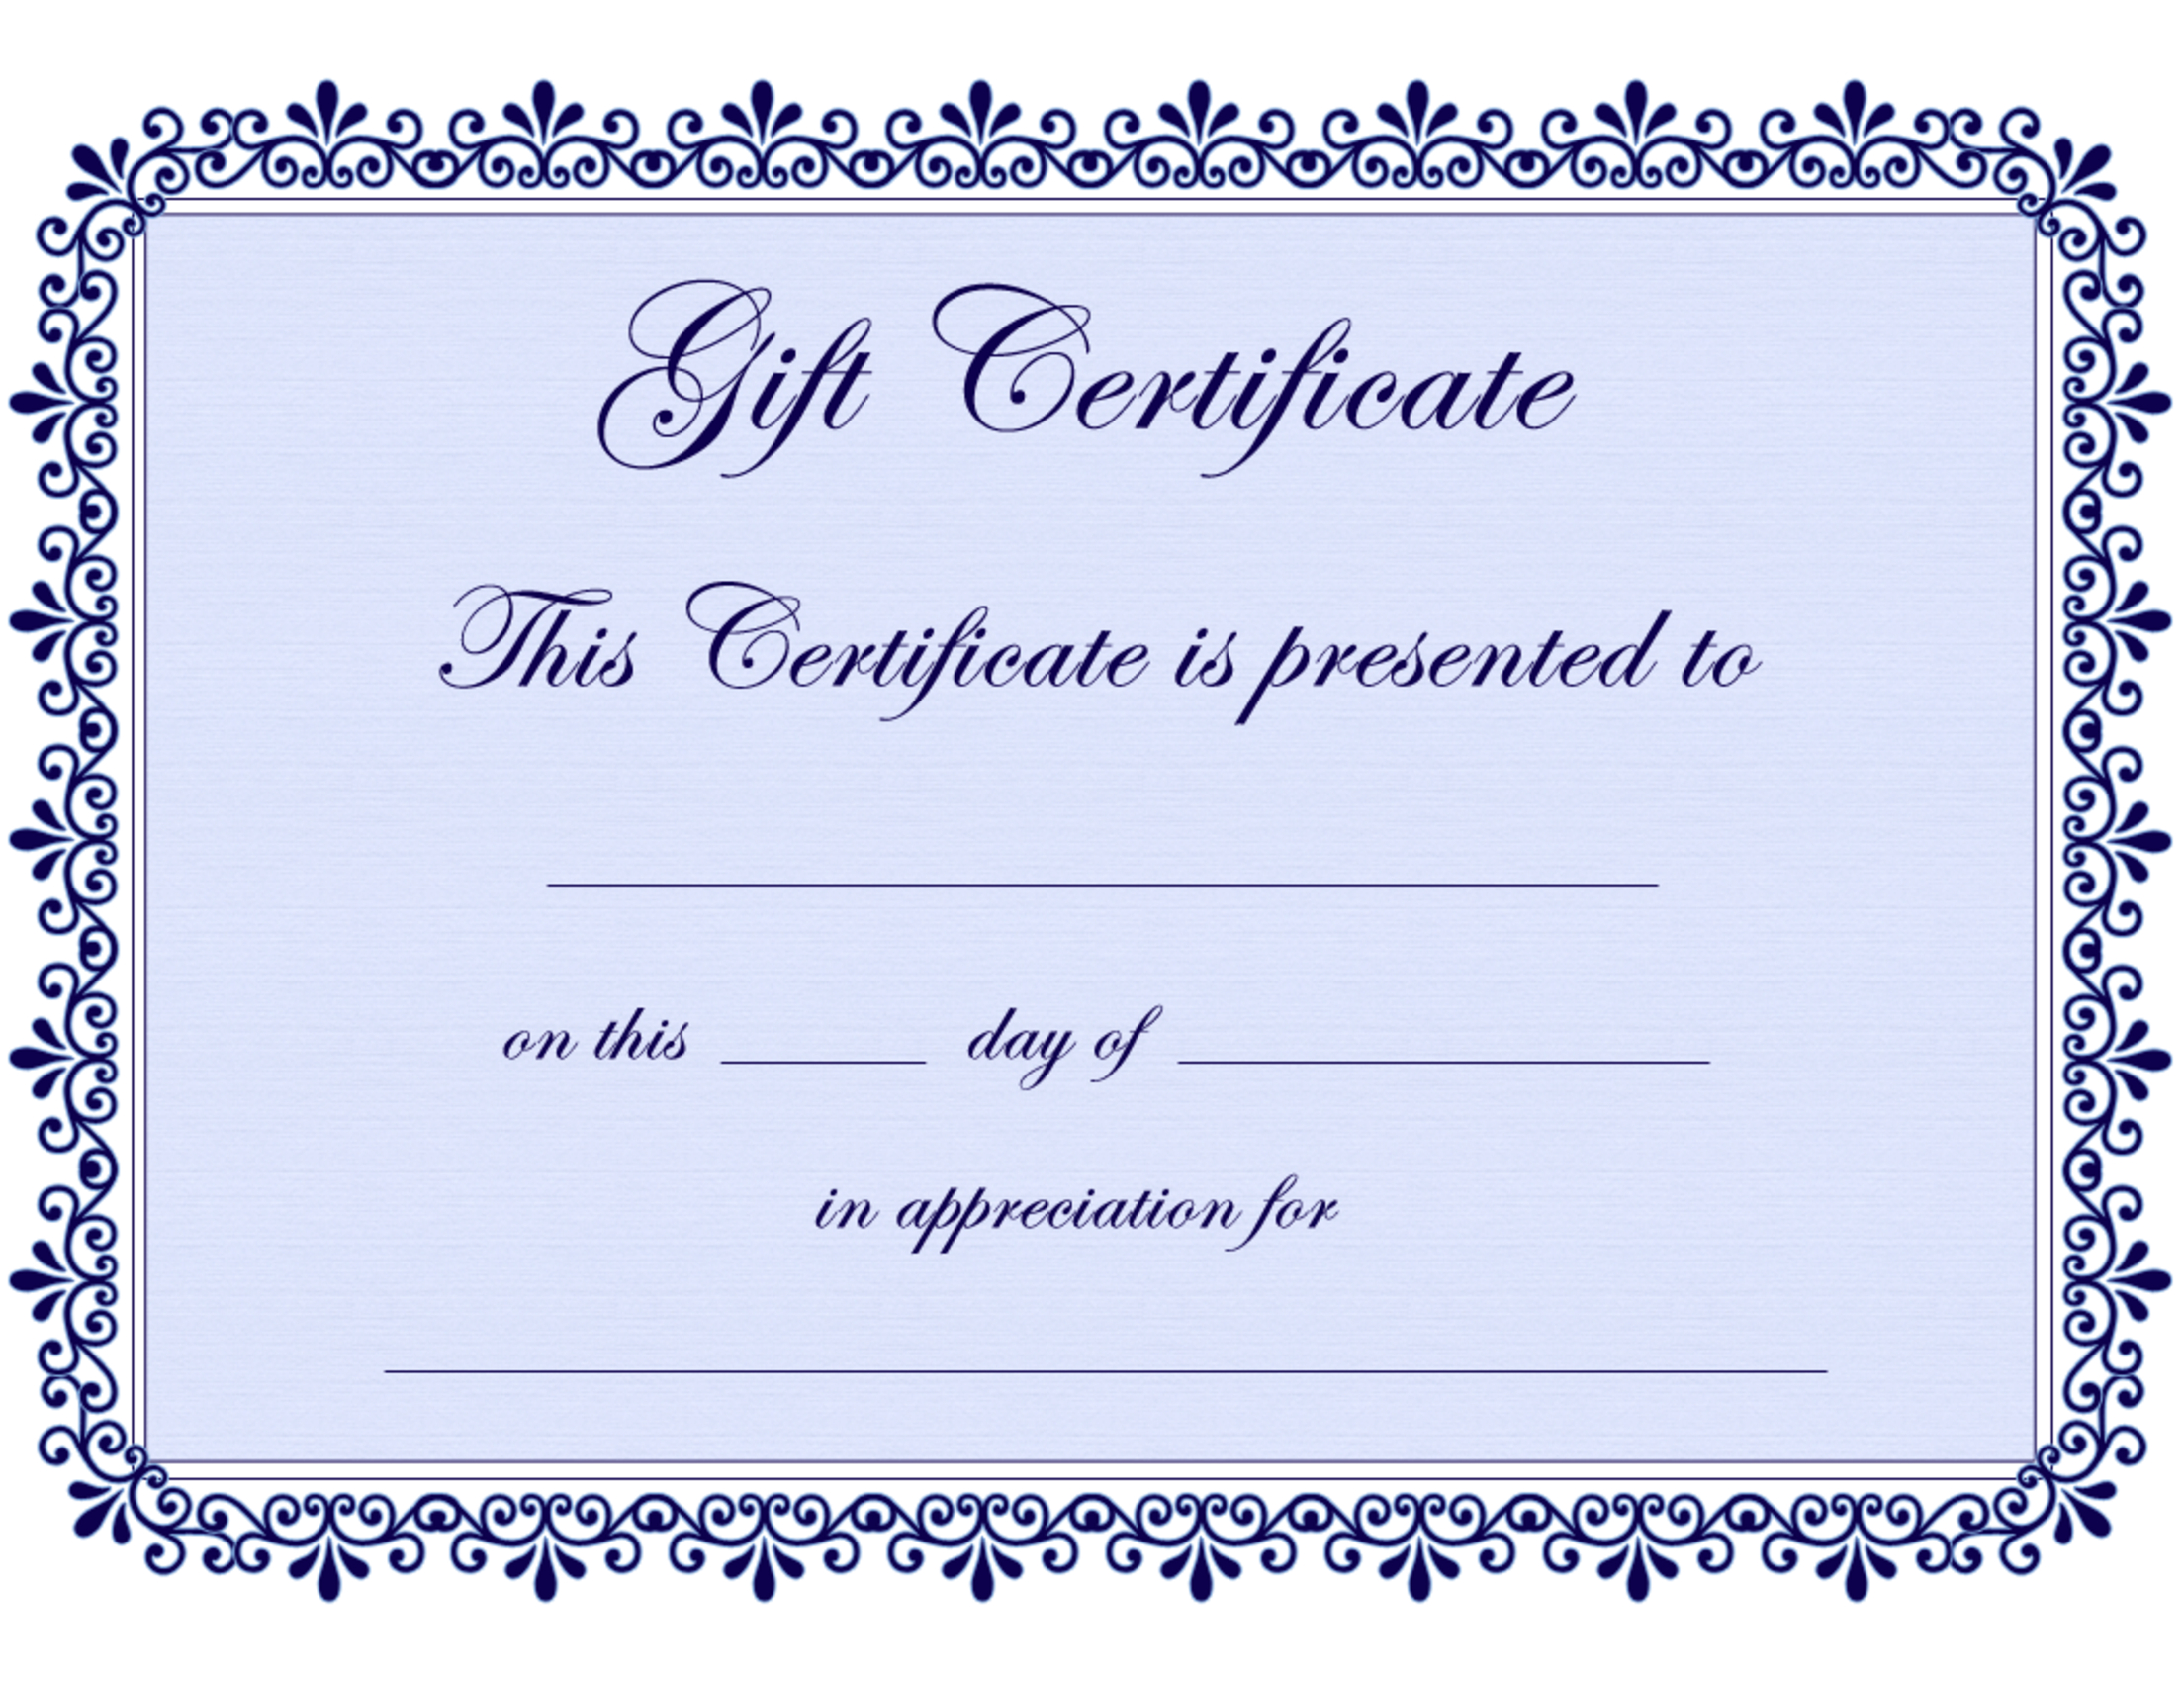 Certificate Templates | Gift Certificate Template Free - Pdf - Free Printable Gift Certificate Template